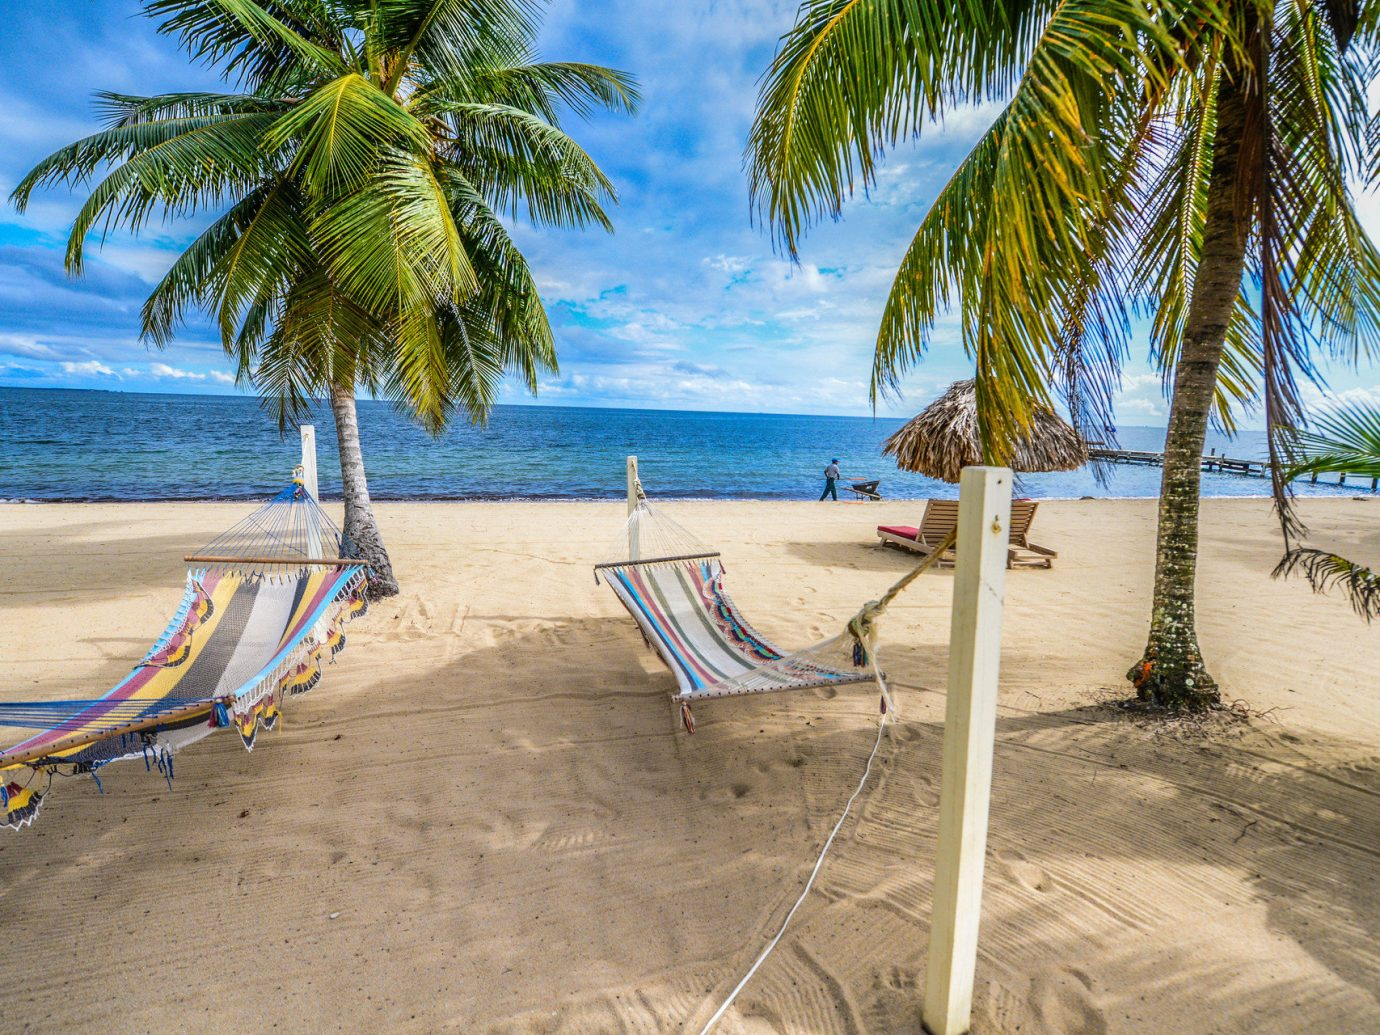 Trip Ideas tree Beach outdoor palm water ground leisure body of water caribbean vacation Sea sandy Ocean arecales tropics Resort Coast swimming pool bay lawn sand lined walkway shade palm family Lagoon shore plant line